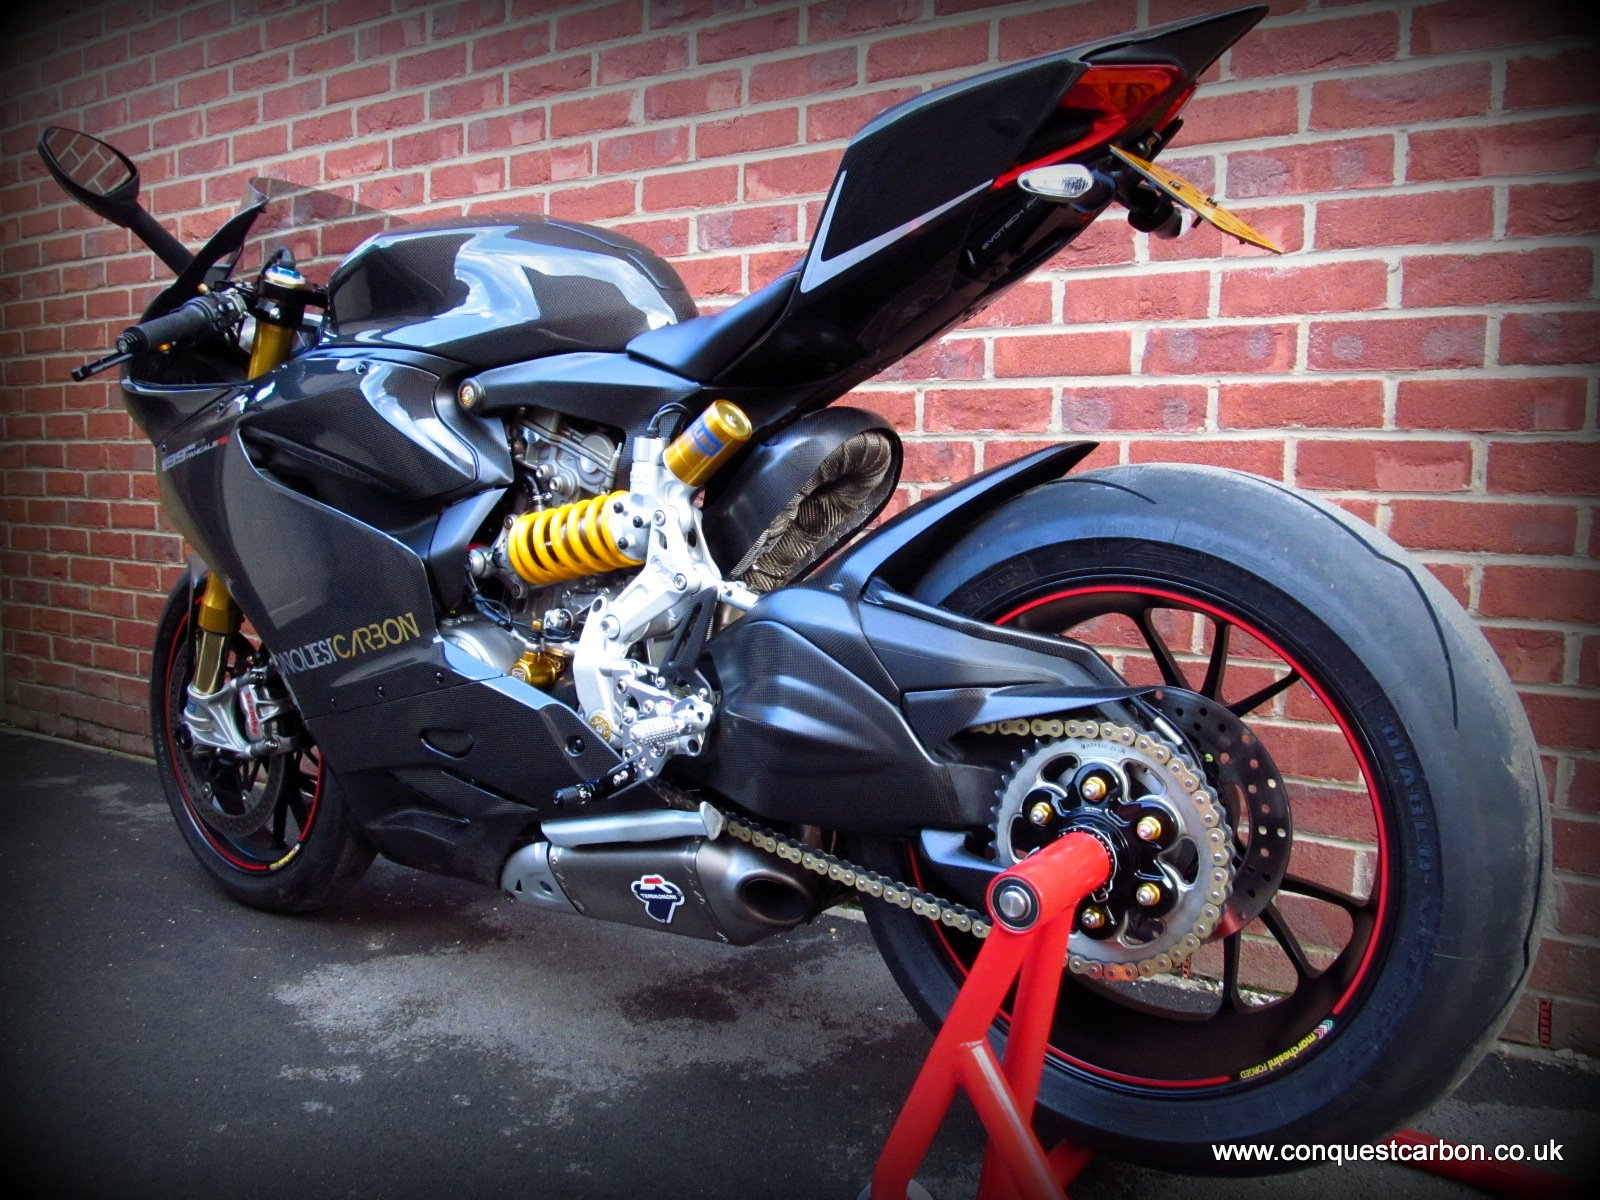 Conquest Carbon 1199 Full Carbon Ducati 899 Panigale Forum